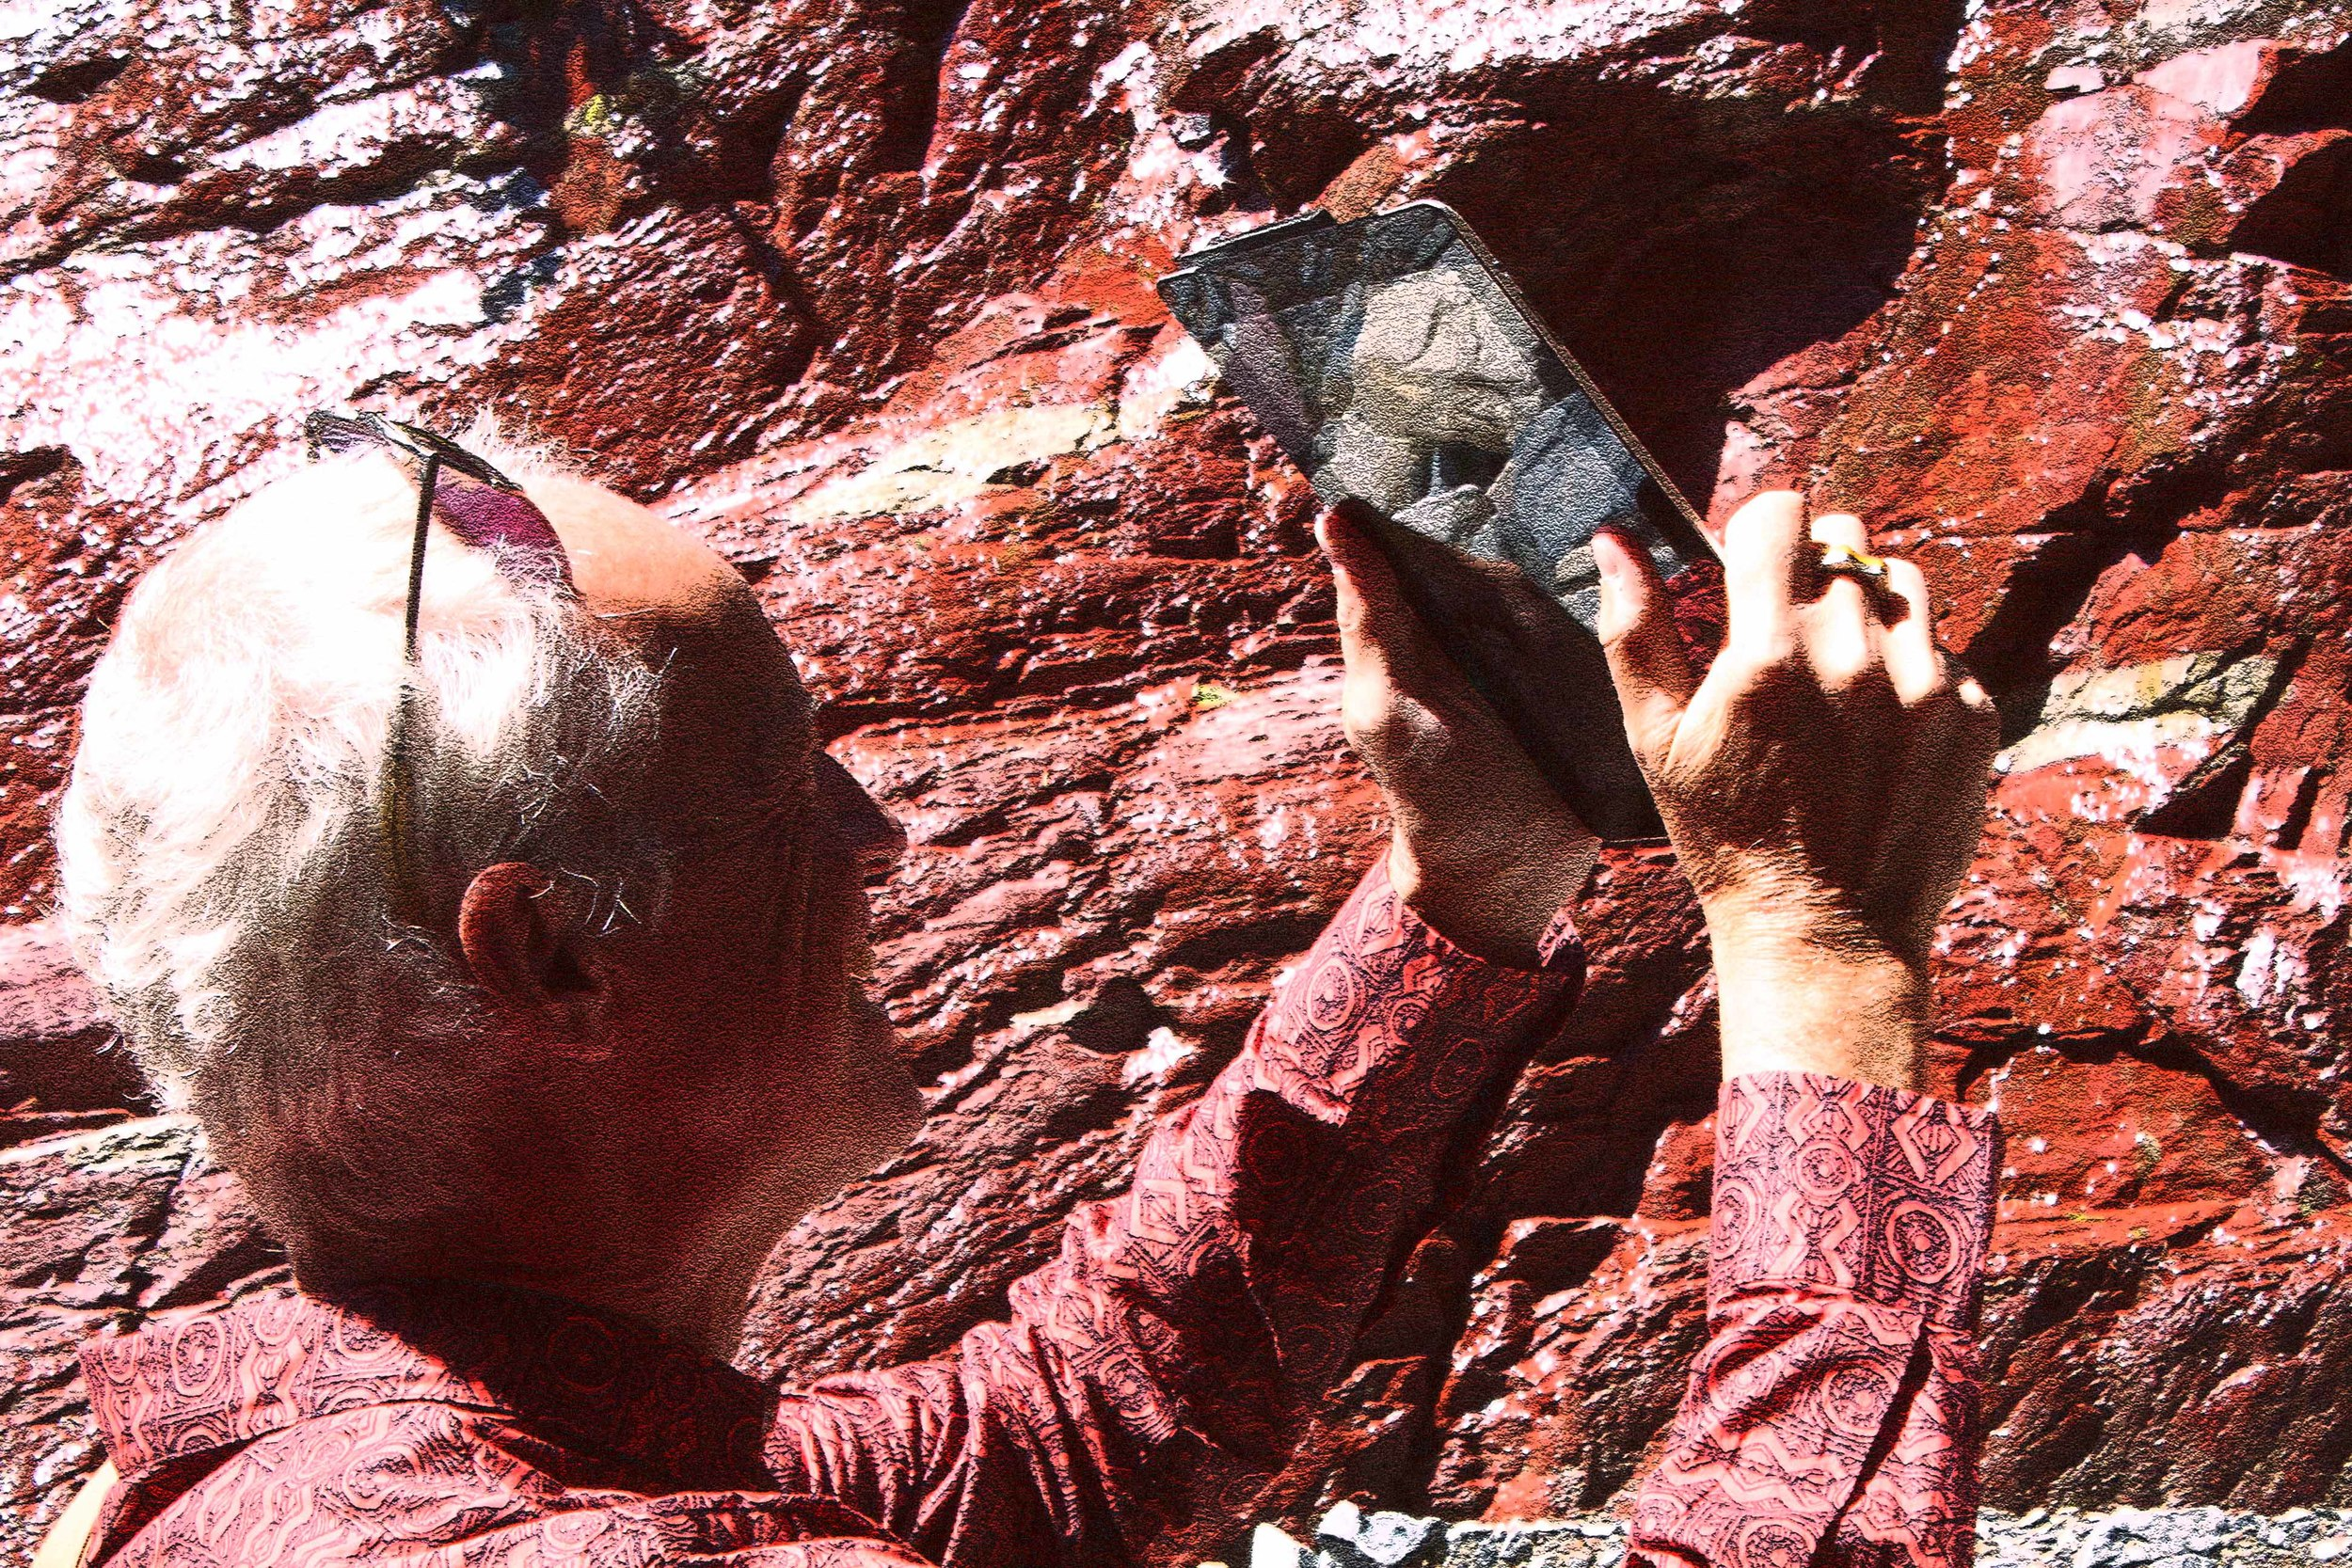 VH photographing in Red Rock Canyon, Alberta, 2013